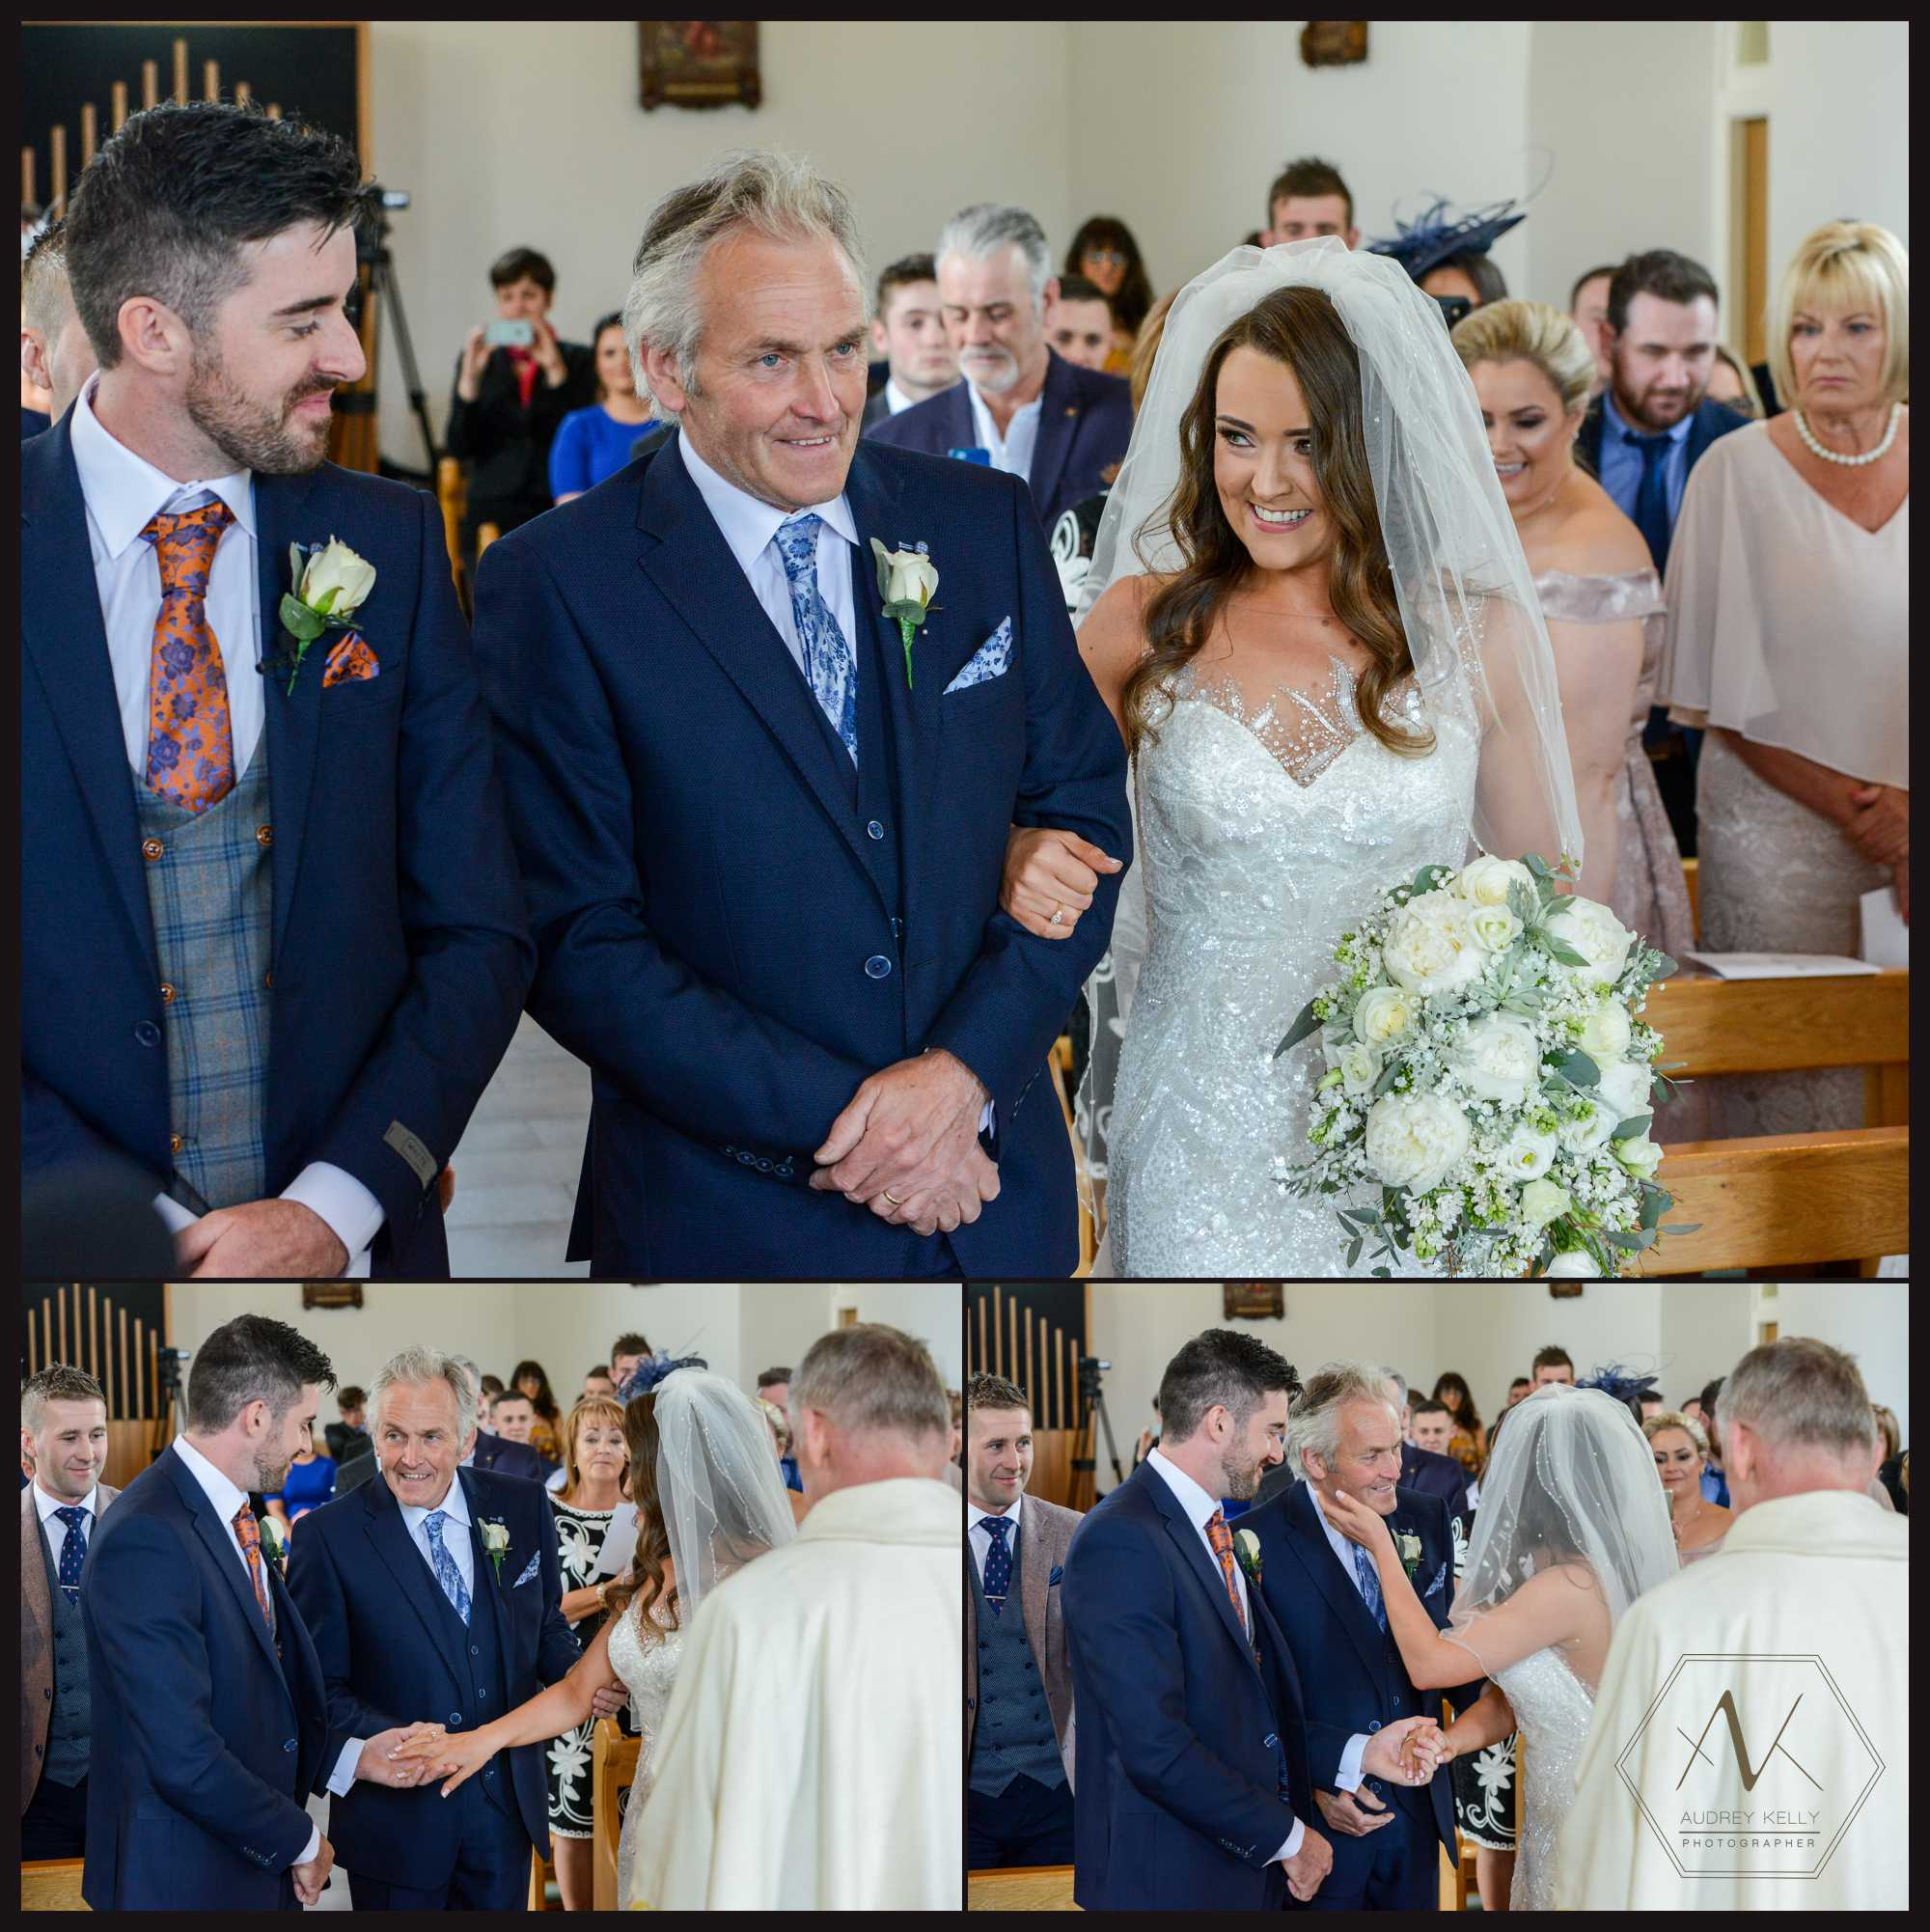 The first look as beautiful blaithnaid meets lee at the end of the aisle at their Ceremony location: Drumragh Parish, St Marys Feriagh Road, Omagh